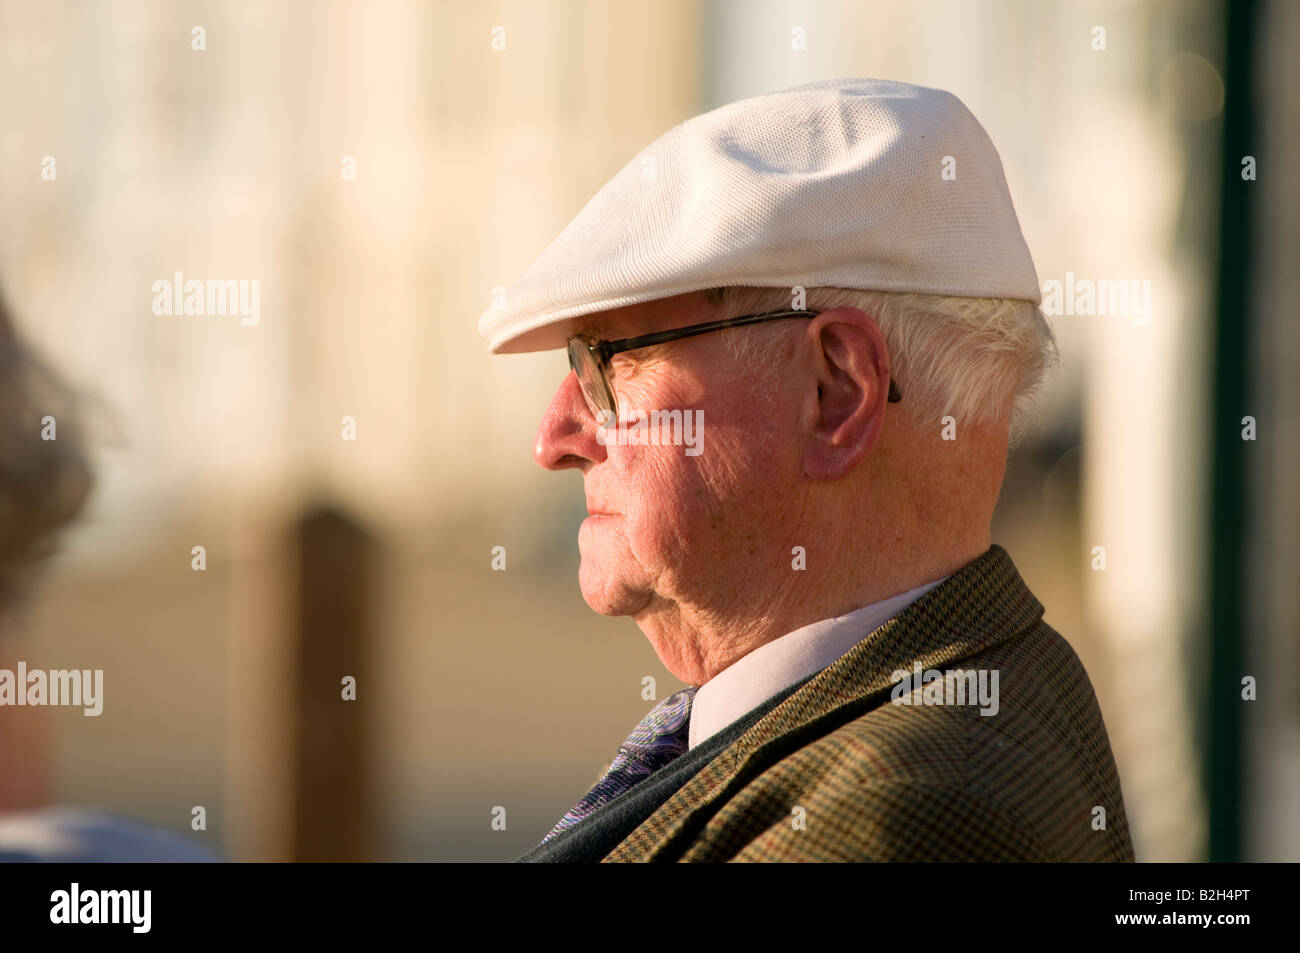 Old man wearing flat white cap and spectacles summer evening in profile UK  - Stock Image 7155dd137fb